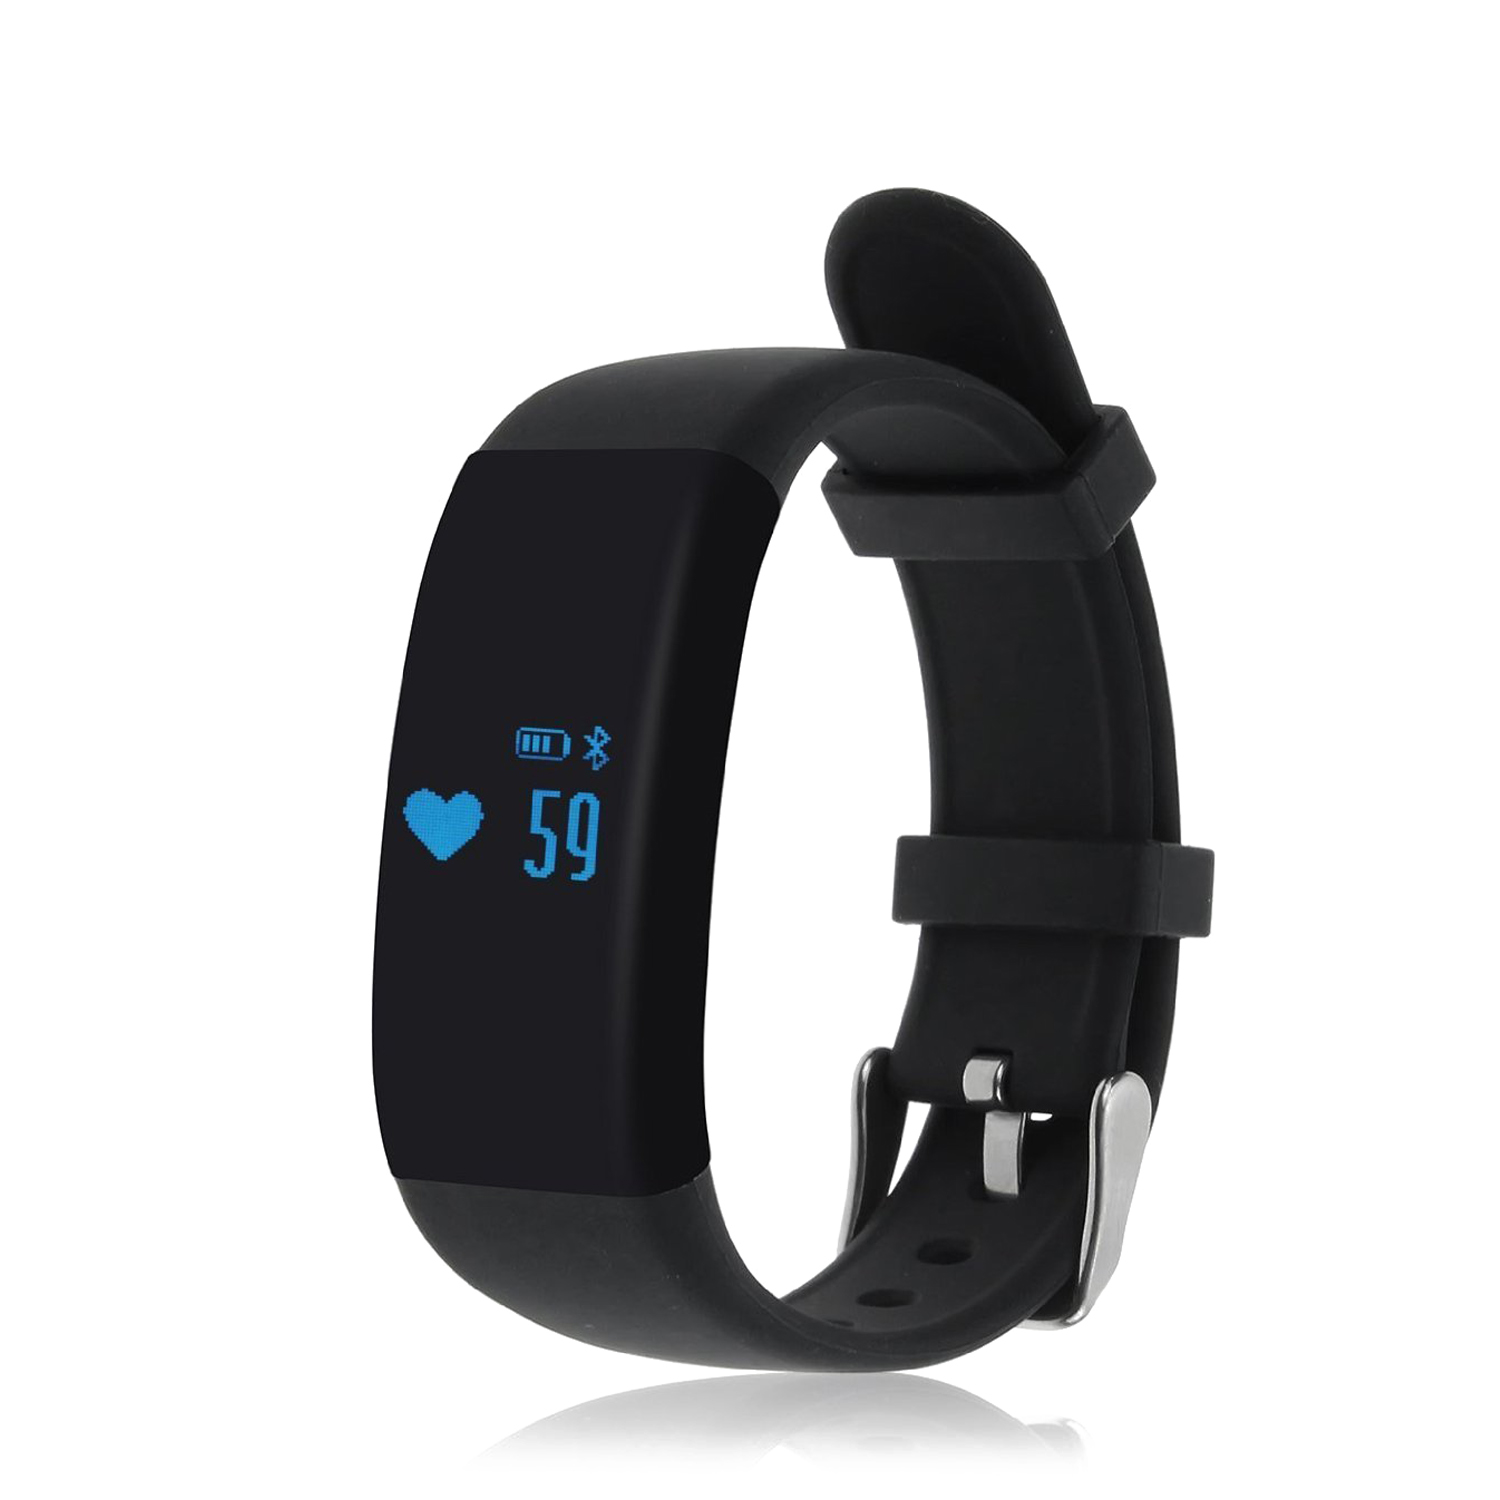 EDT-D21 Fitness Tracker,Touch Screen Accurate Sleeping Monitor Pedometer Smart Band Wireless Activity Wristband (Black)